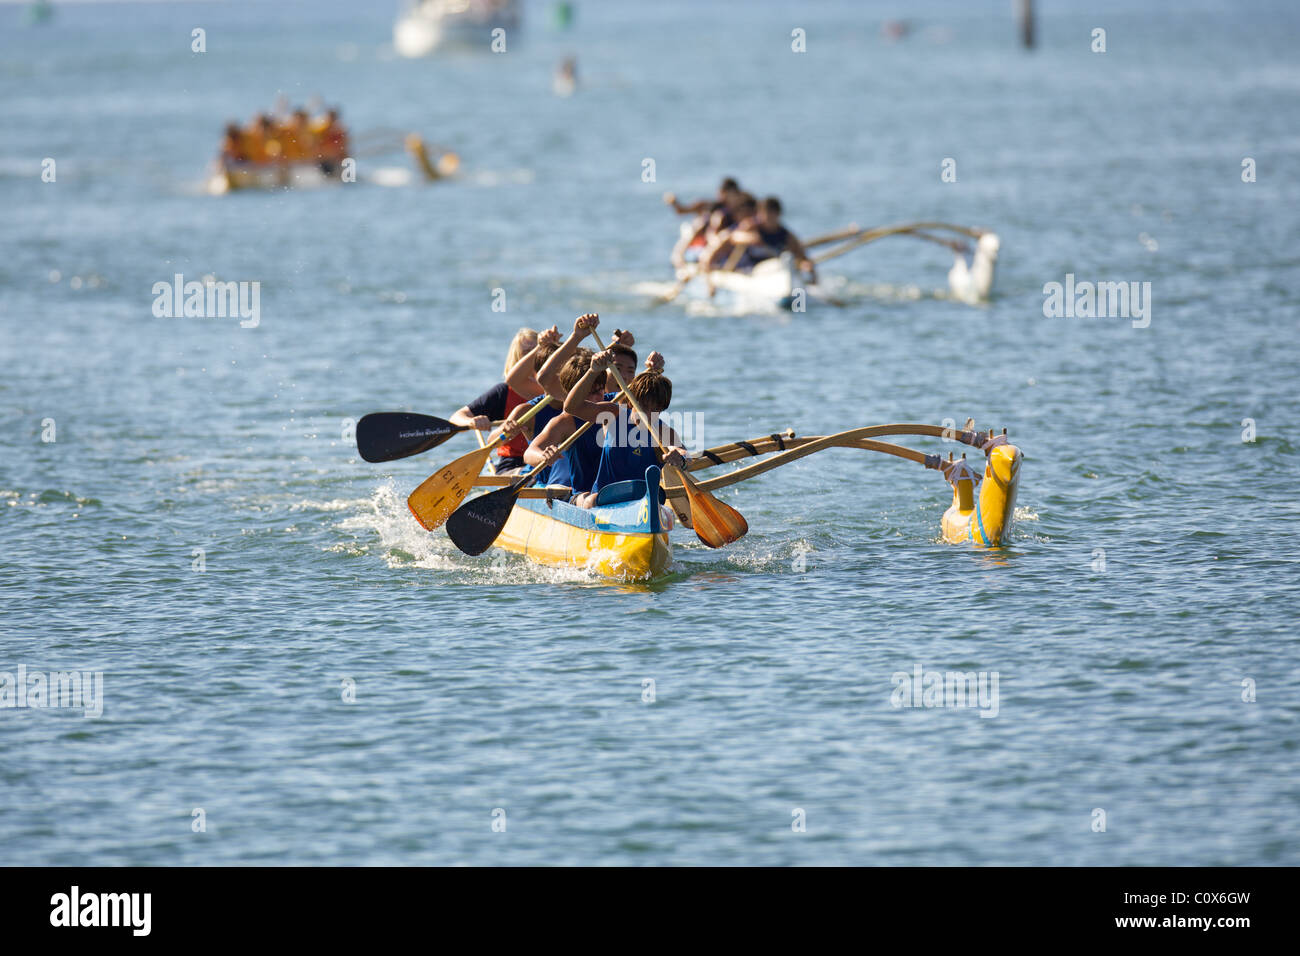 Outrigger canoe paddlers - Stock Image